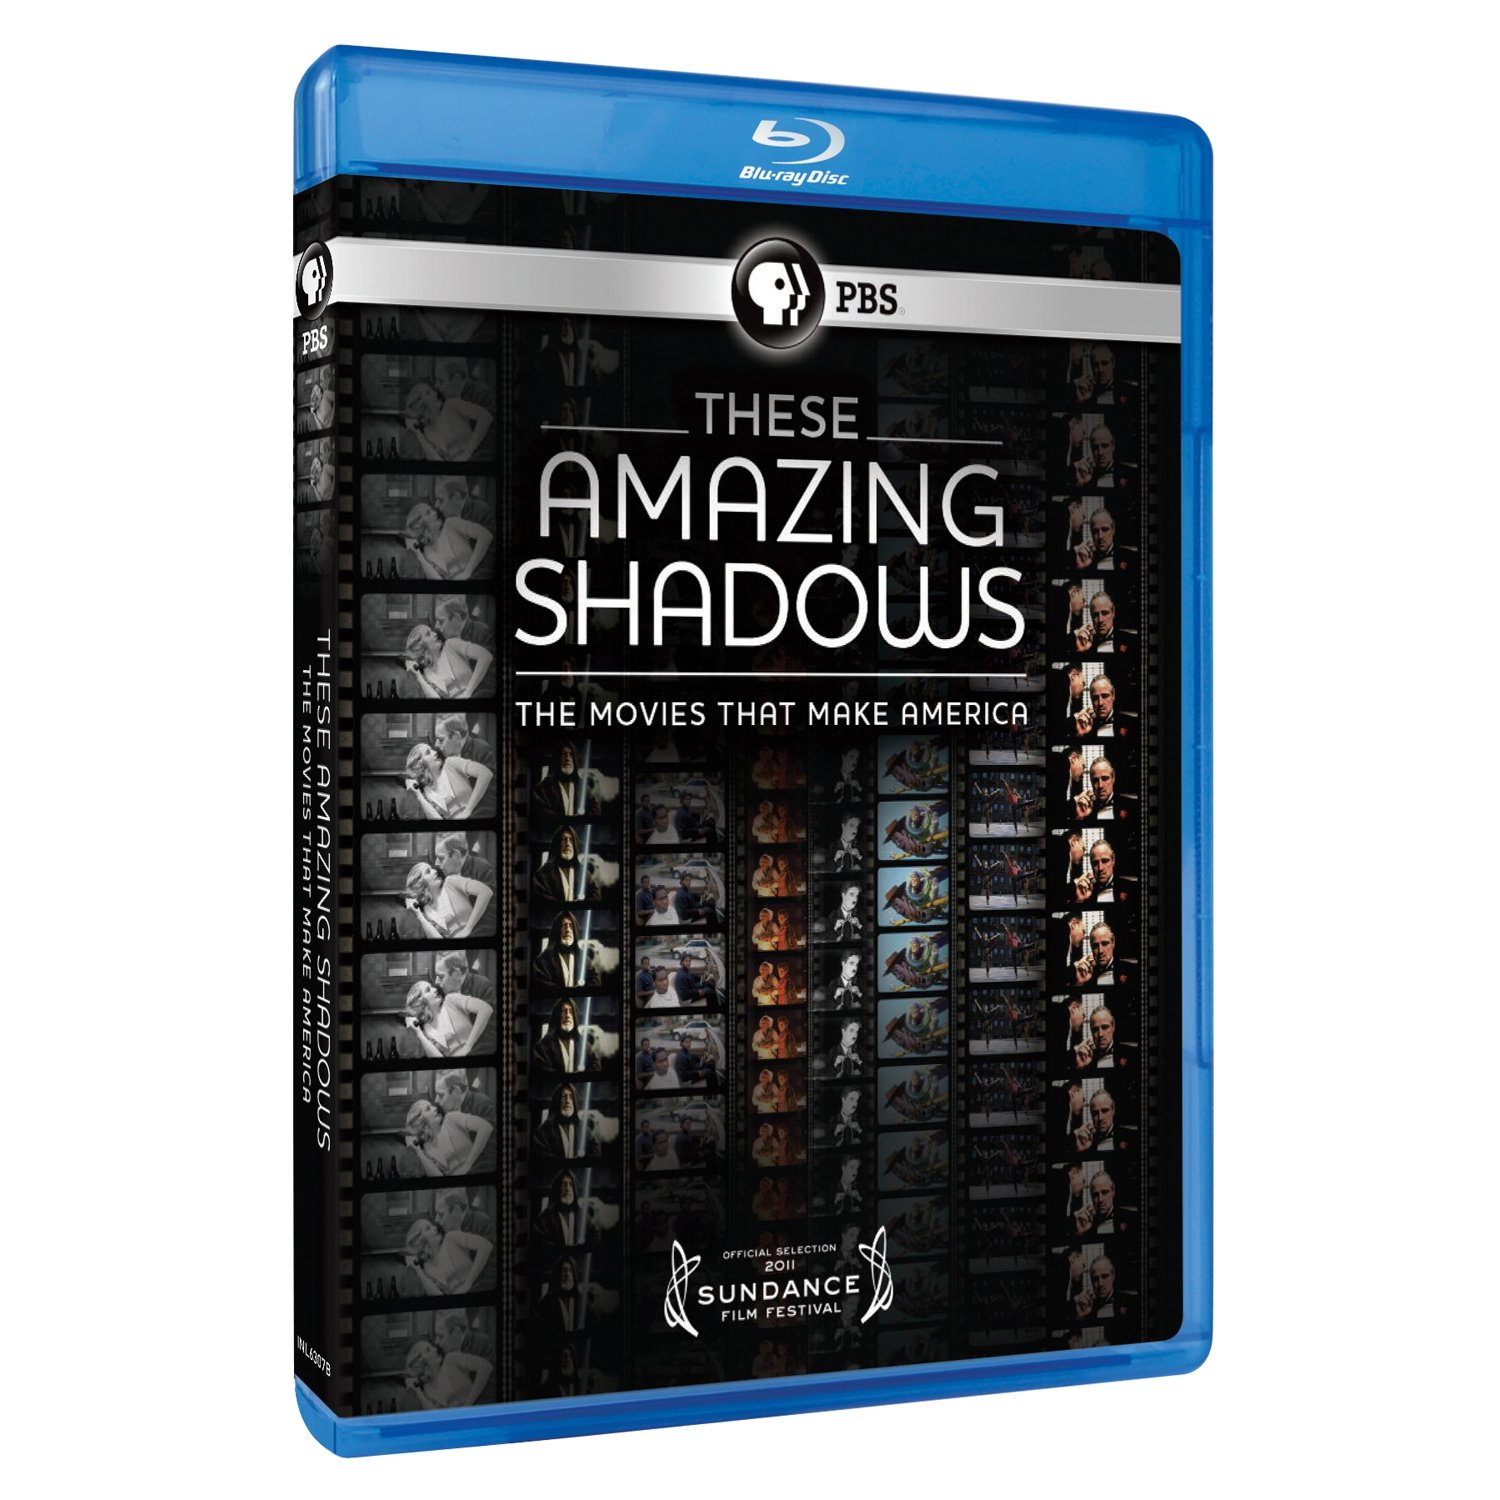 These Amazing Shadows: The Movies That Make America (Blu-ray)